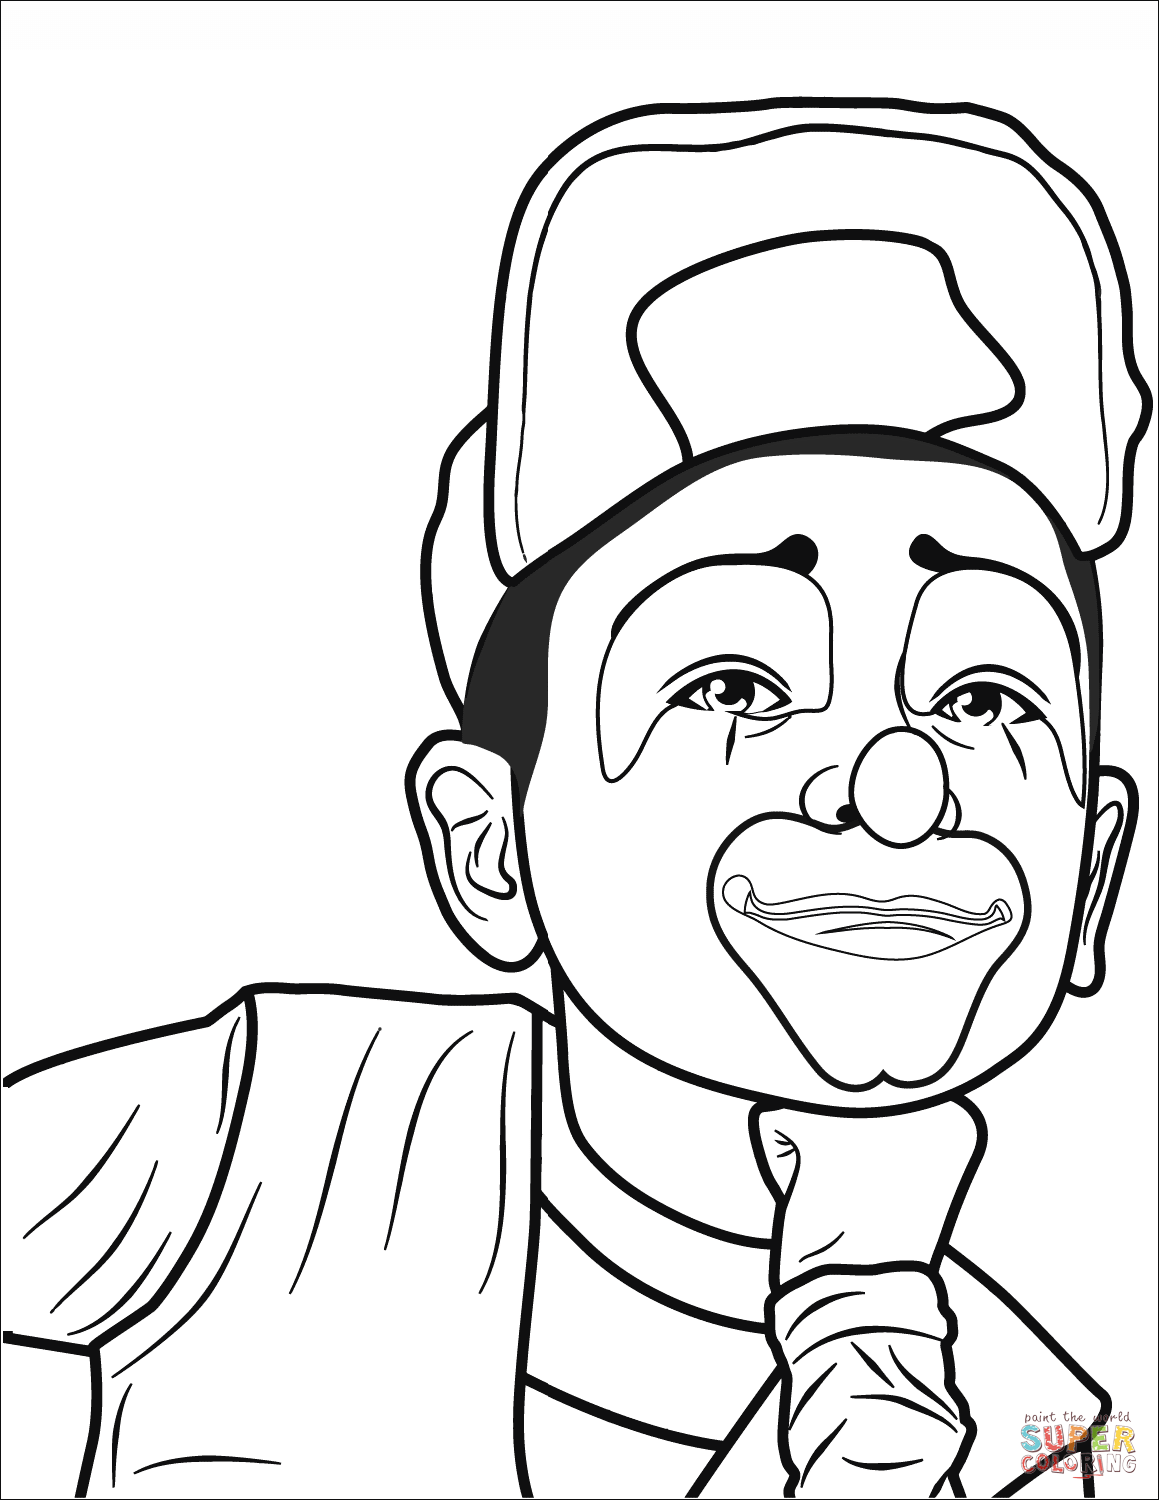 free clown coloring pages clown coloring page free printable coloring pages free clown coloring pages